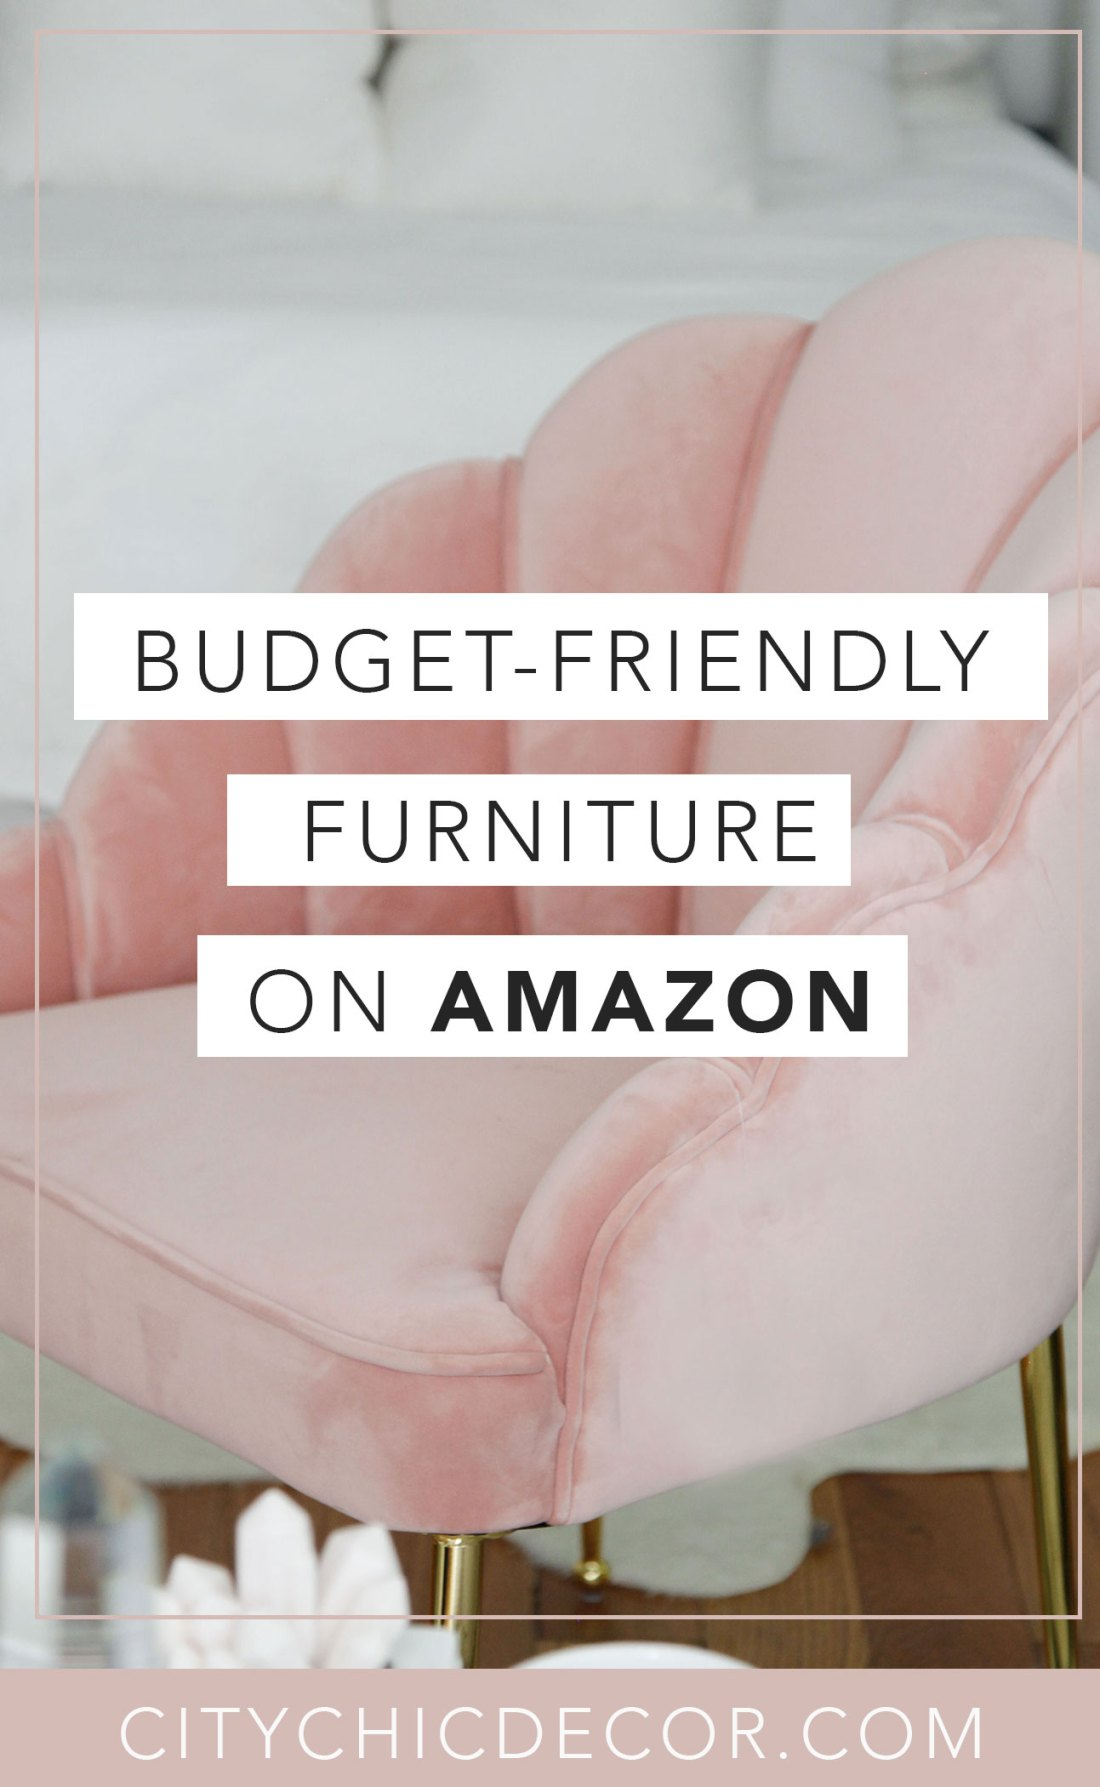 These glam, affordable furniture items from Amazon will blow you & your house guests away. From glam decor to stunning velvet chairs, you'll be shocked with how budget-friendly and cheap these things are! #furnituredesign #furnitureideas #affordablefurniture #affordablefurnitureideas #amazon #thingstobuyonamazon